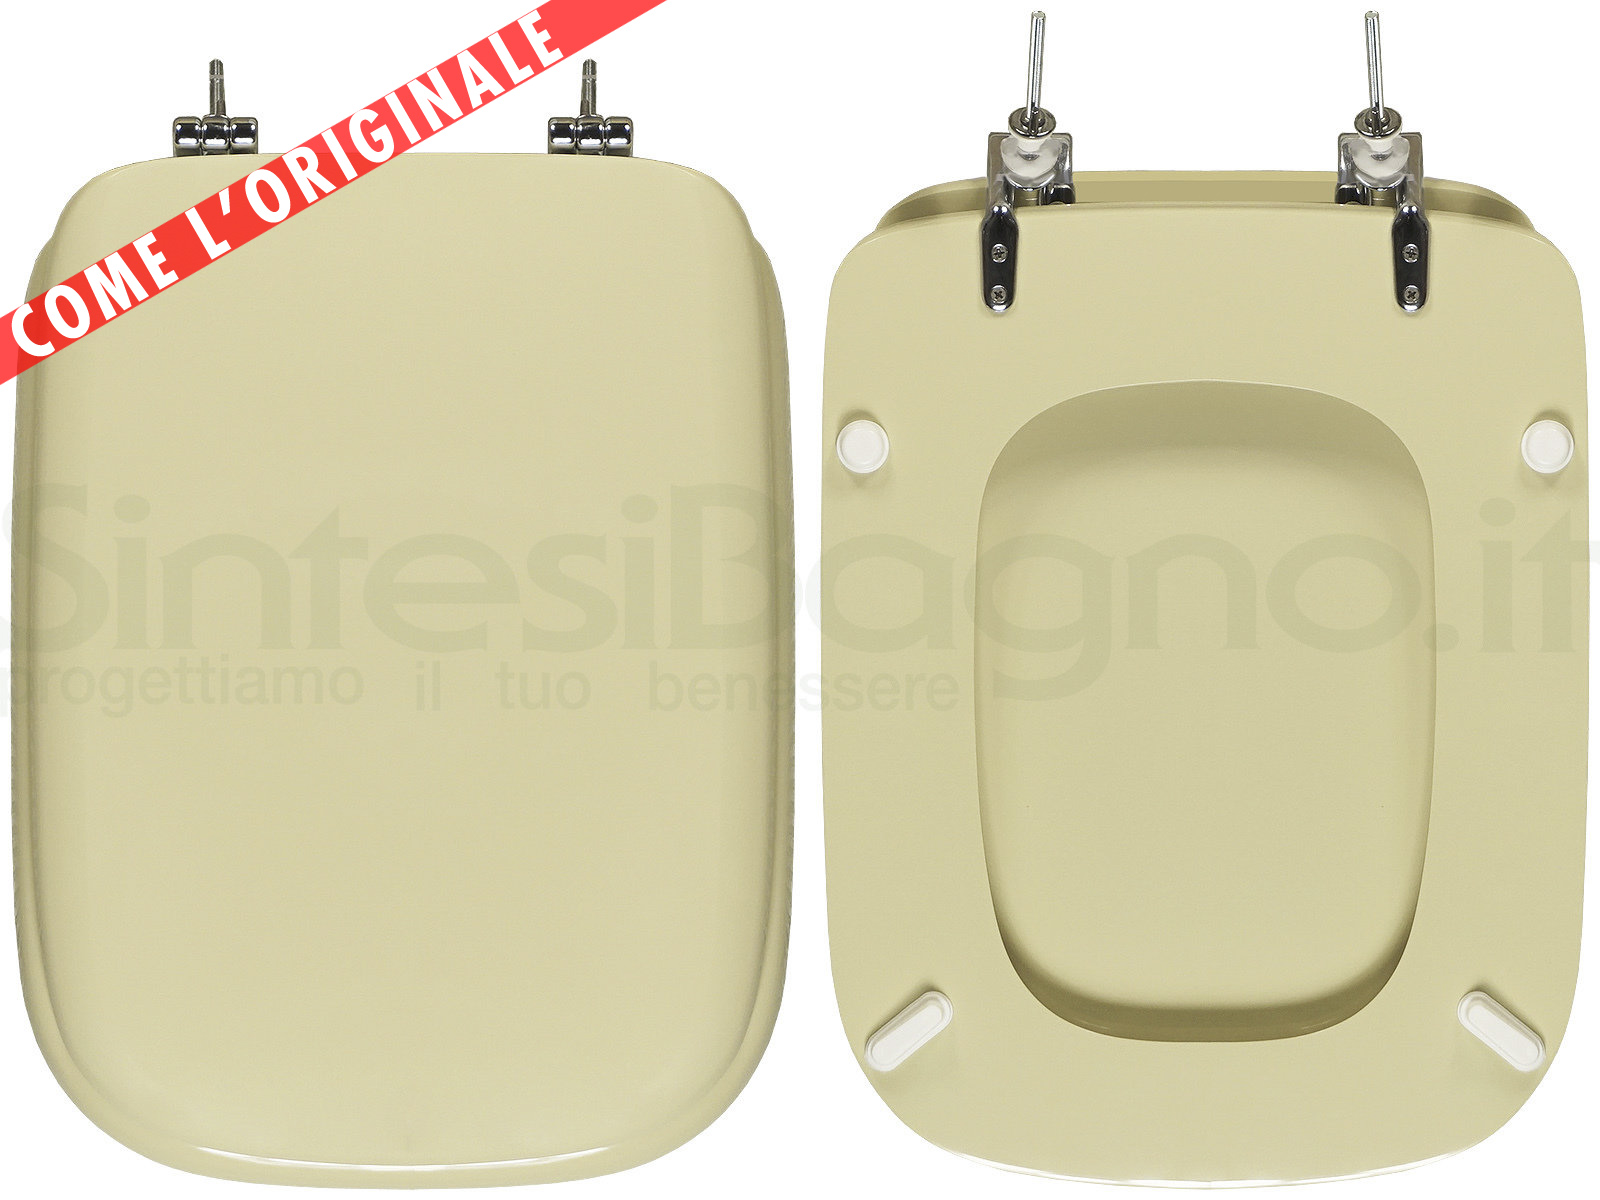 Asse Water Conca.Wc Seat Made For Wc Conca Ideal Standard Model Champagne Type Dedicated Sintesibagno Shop Online